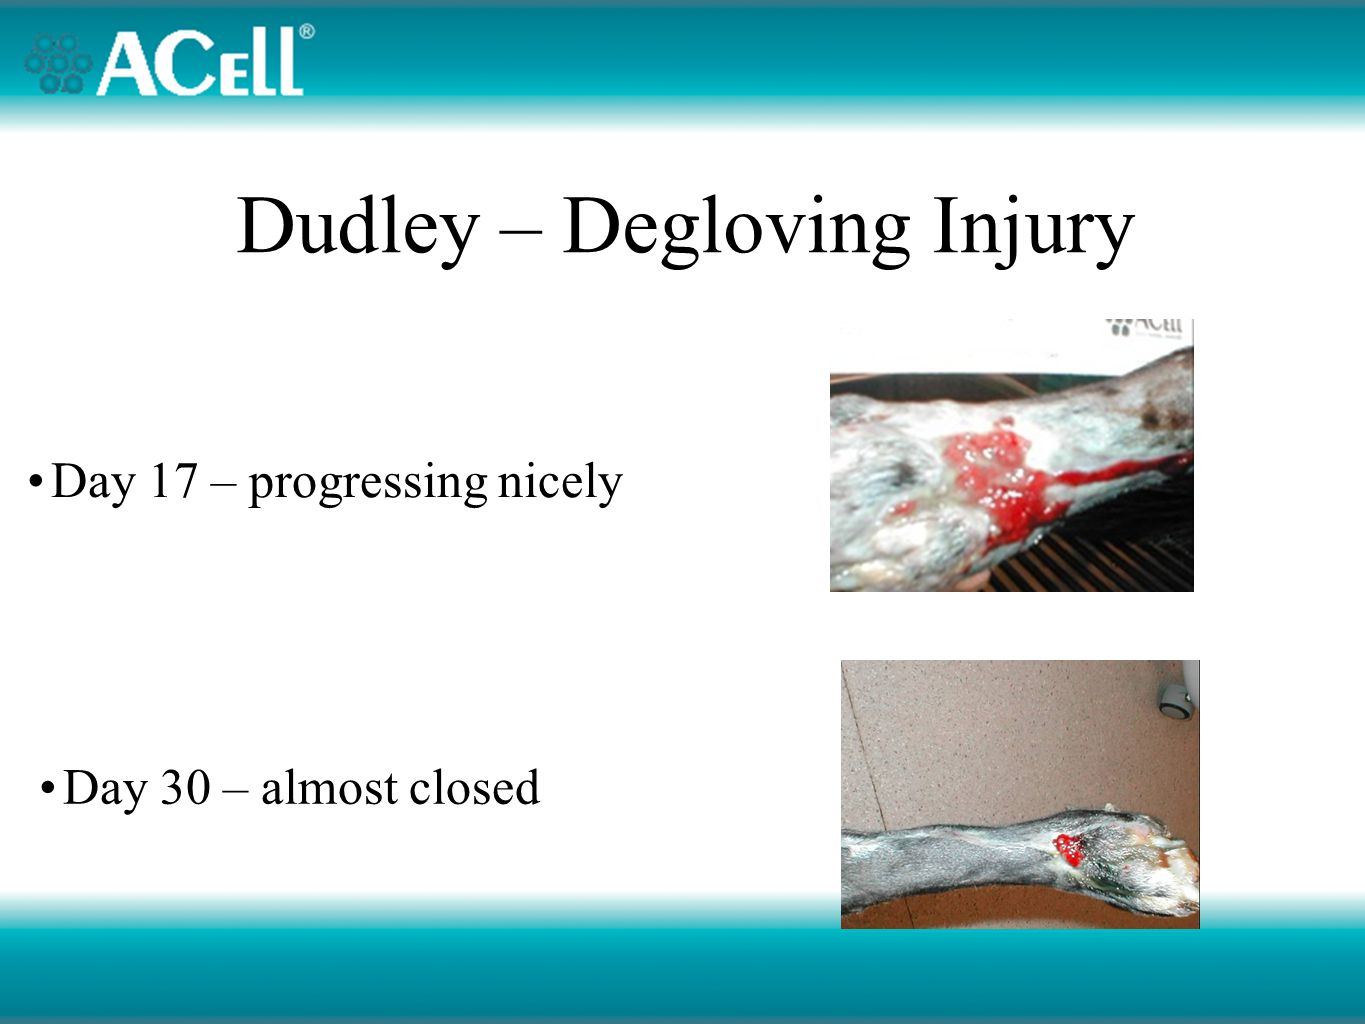 Dudley – Degloving Injury Day 17 – progressing nicely Day 30 – almost closed